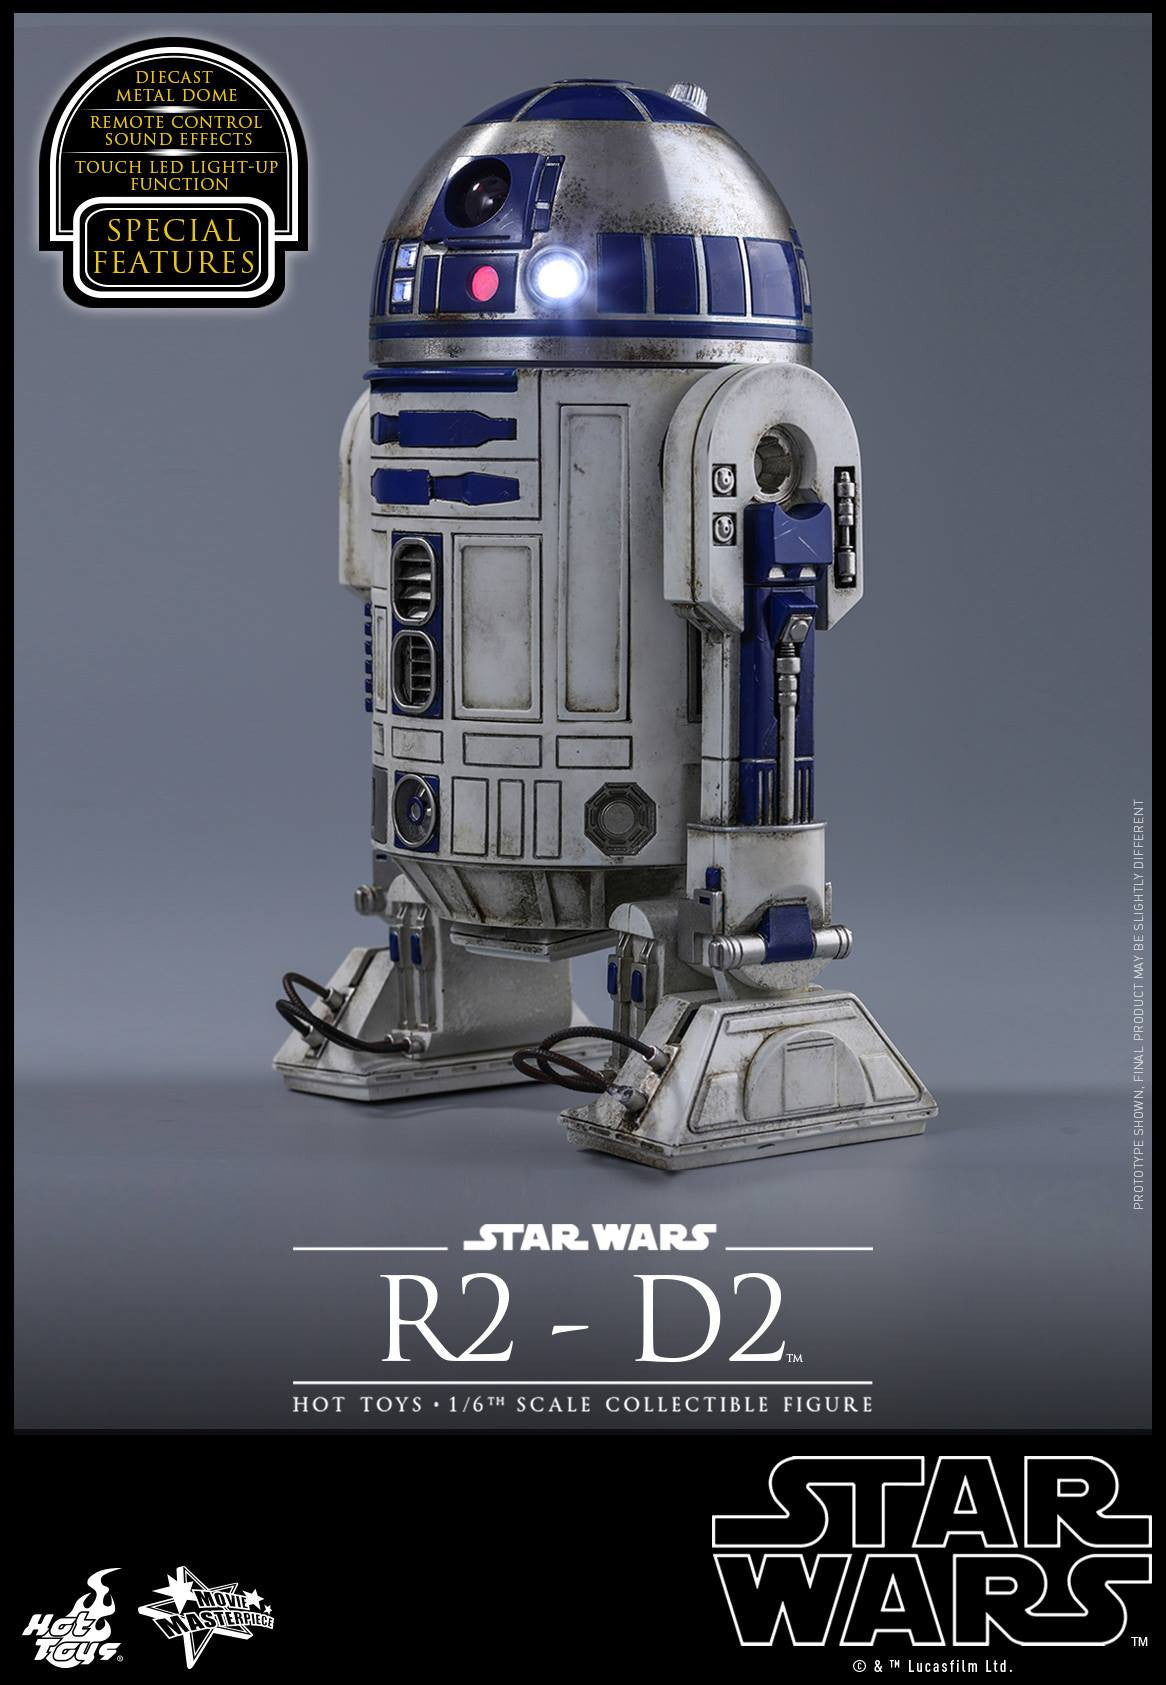 Hot Toys - MMS408 - Star Wars: The Force Awakens - R2-D2 - Marvelous Toys - 3